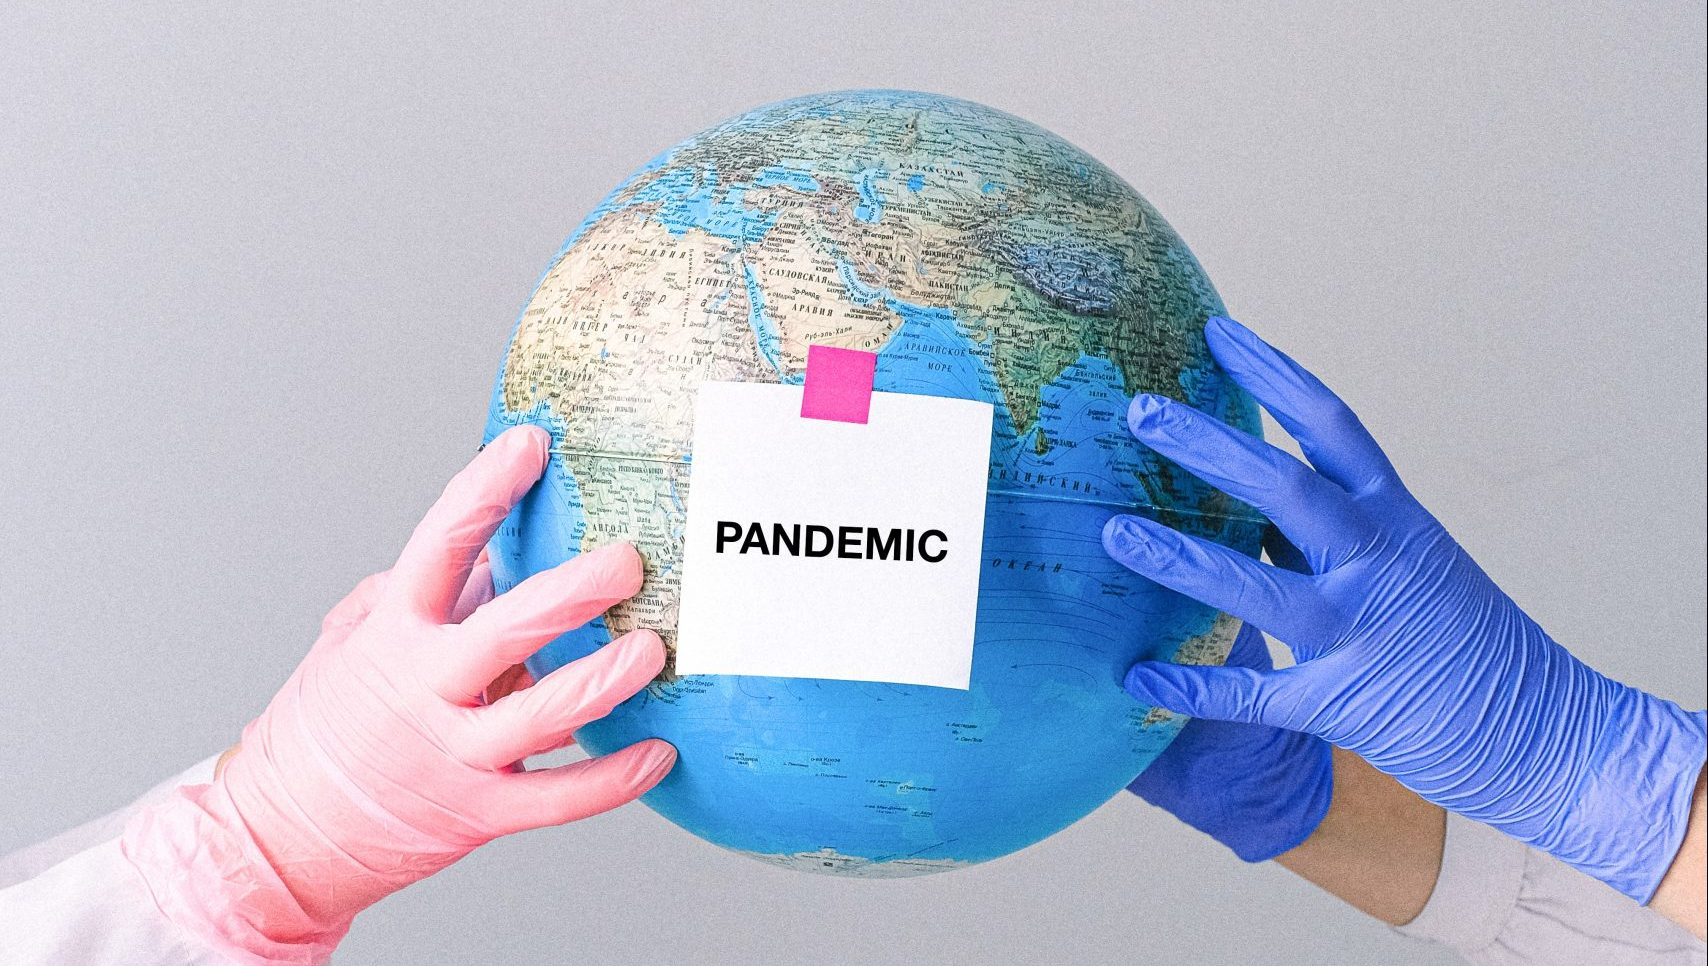 Coronavirus and sustainability: Lessons from the global pandemic